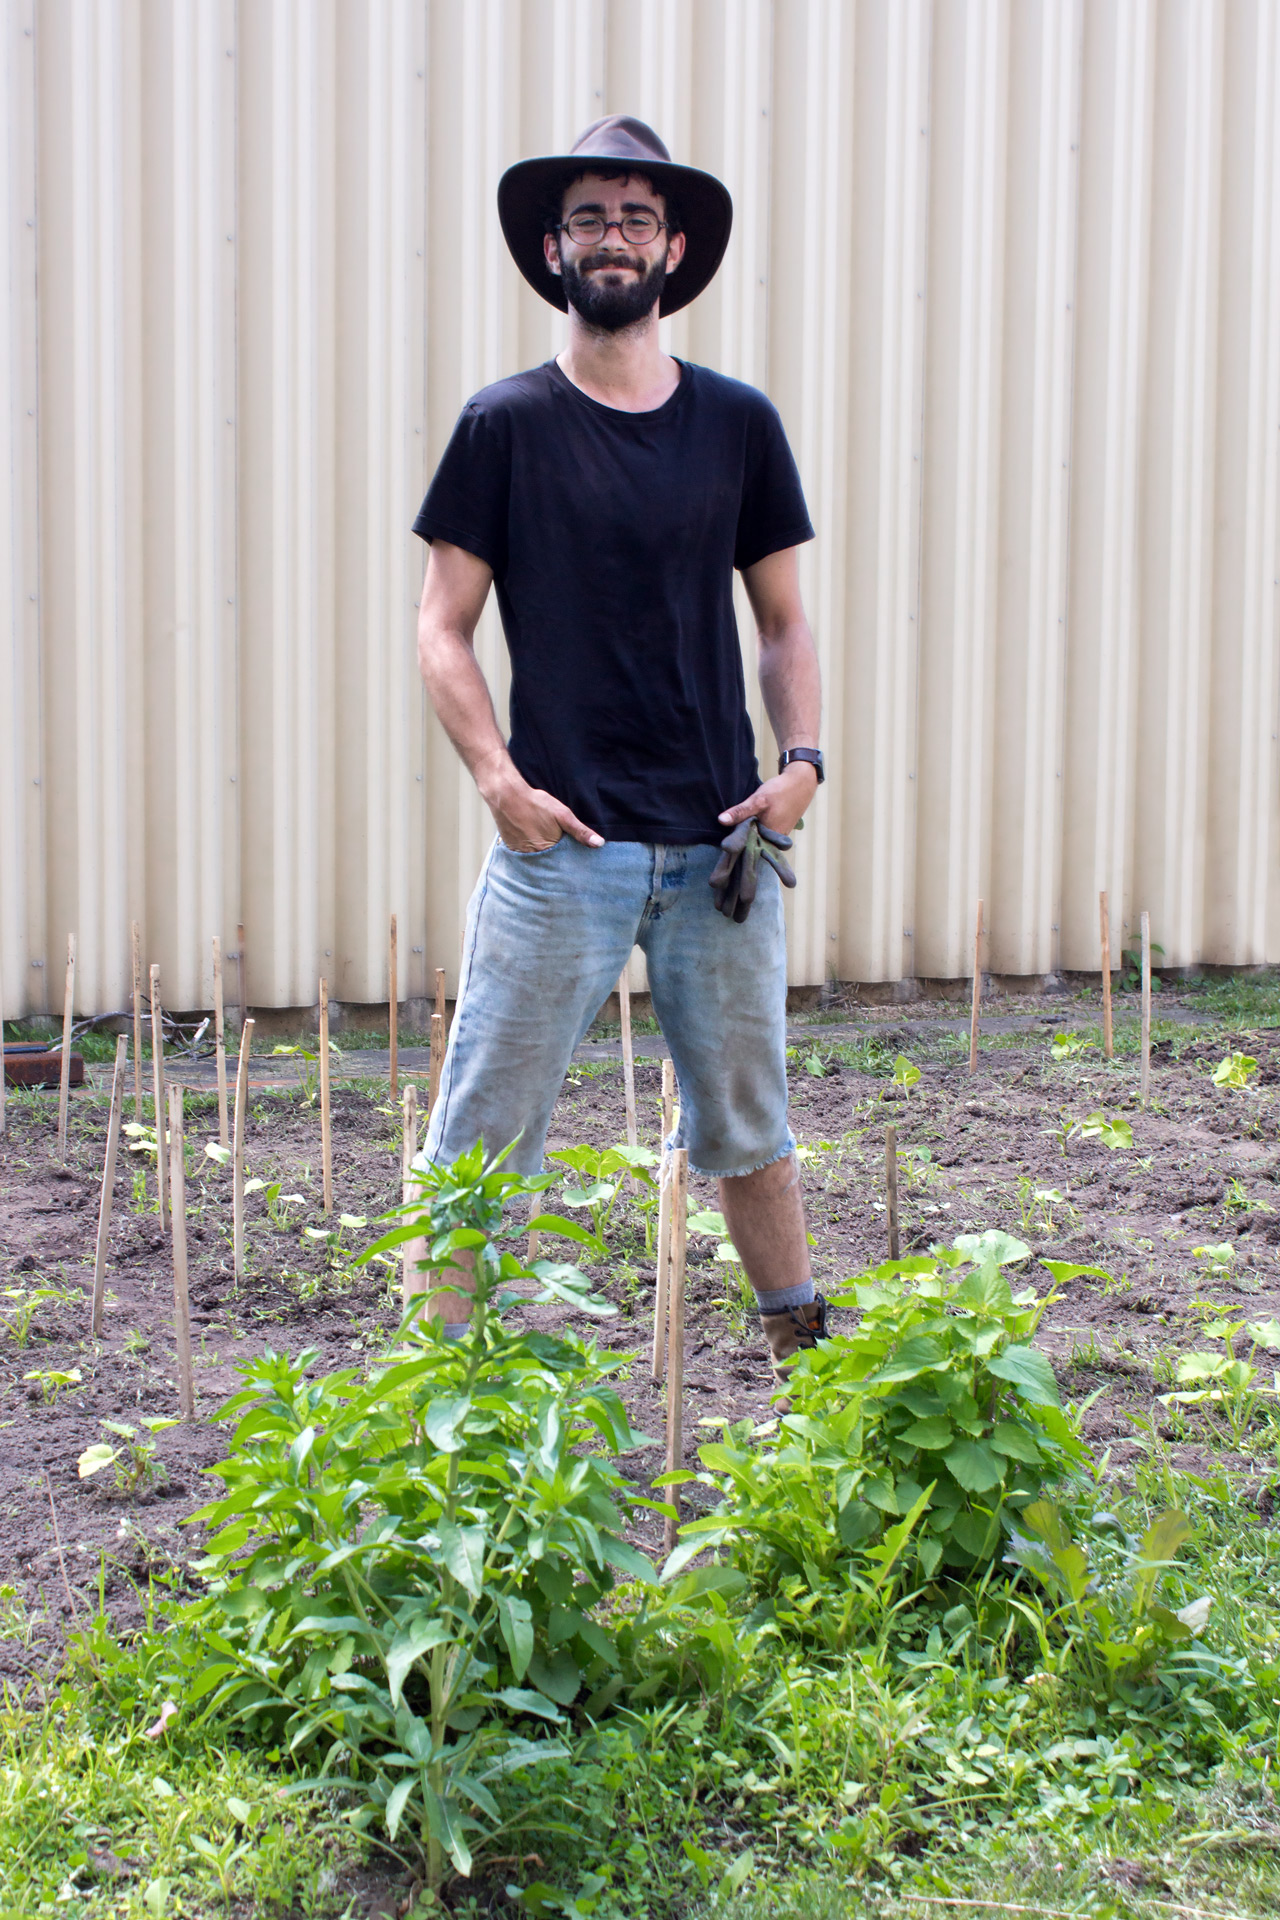 Florian taking over the vegetable garden of Collège André-Grasset left in need of good care.